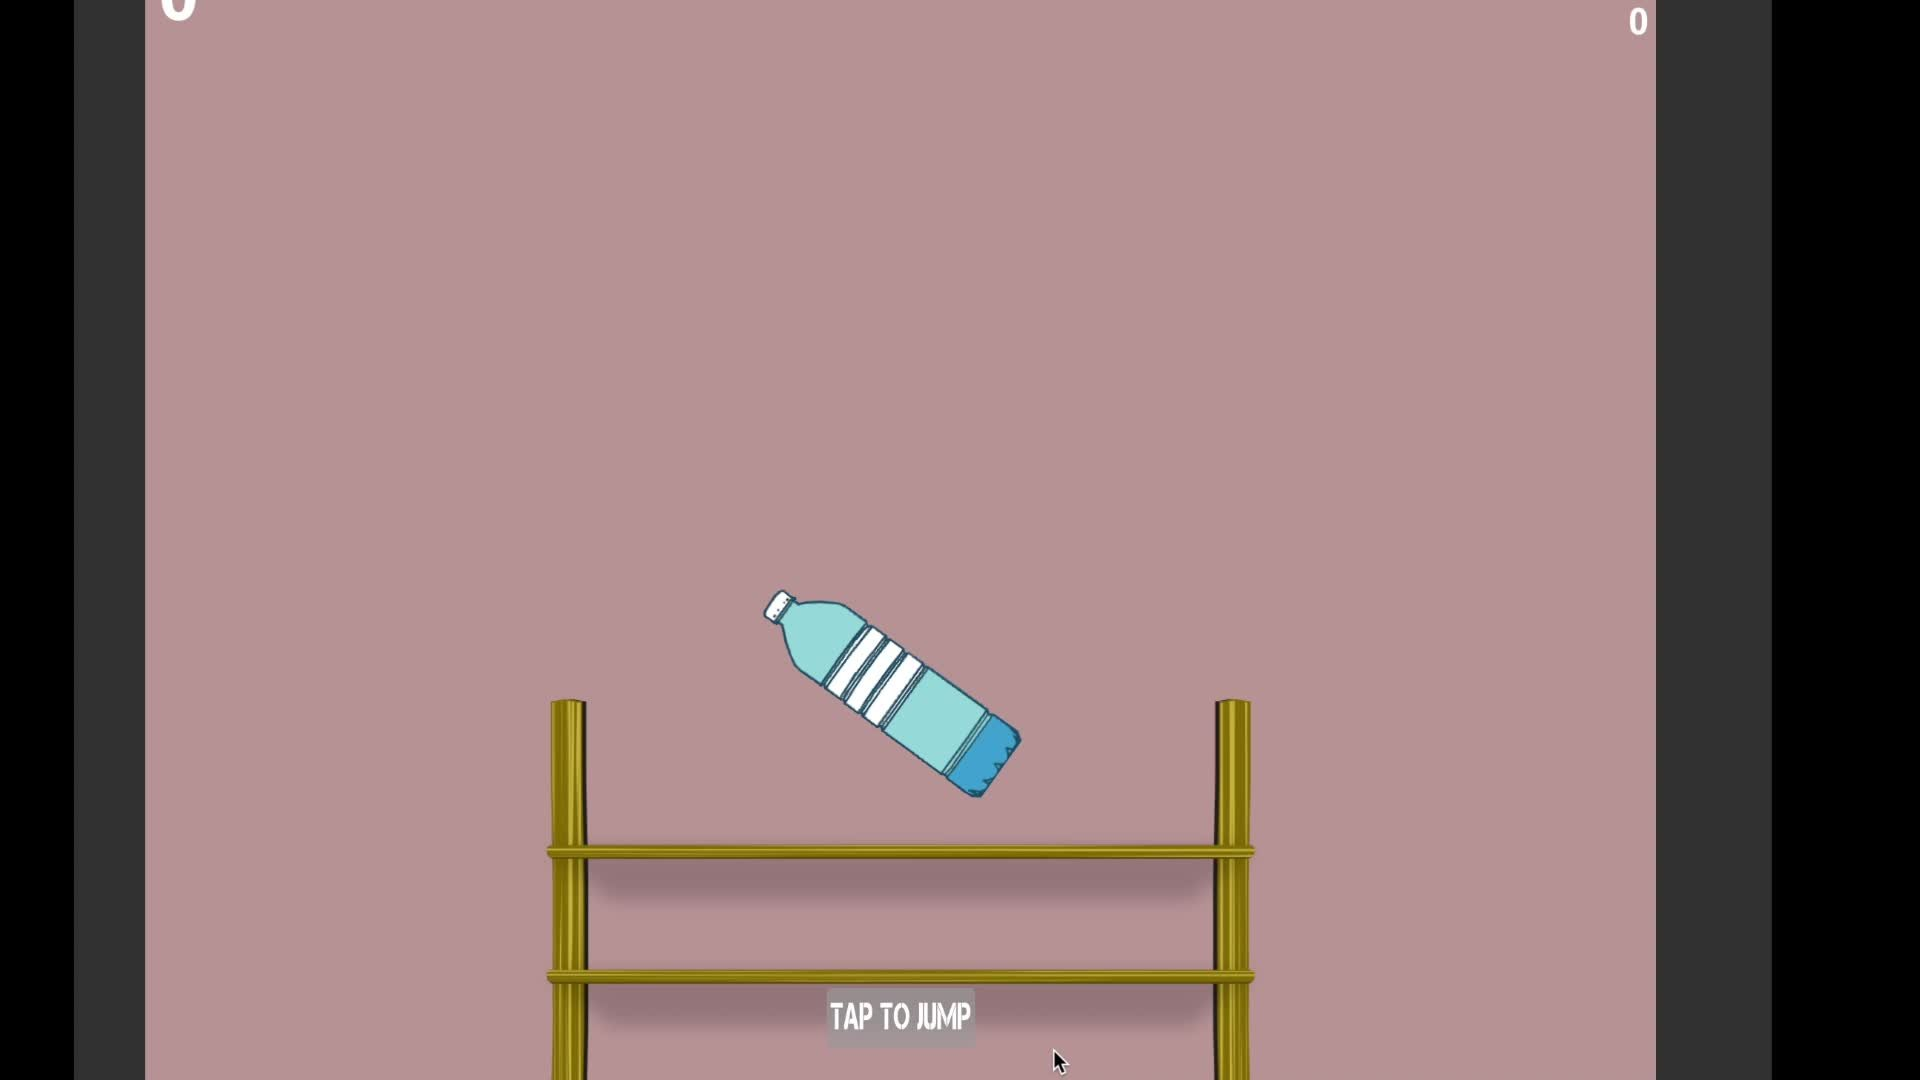 Unity 5 Clone Bottle Flip 2k16 fast and publish on app store